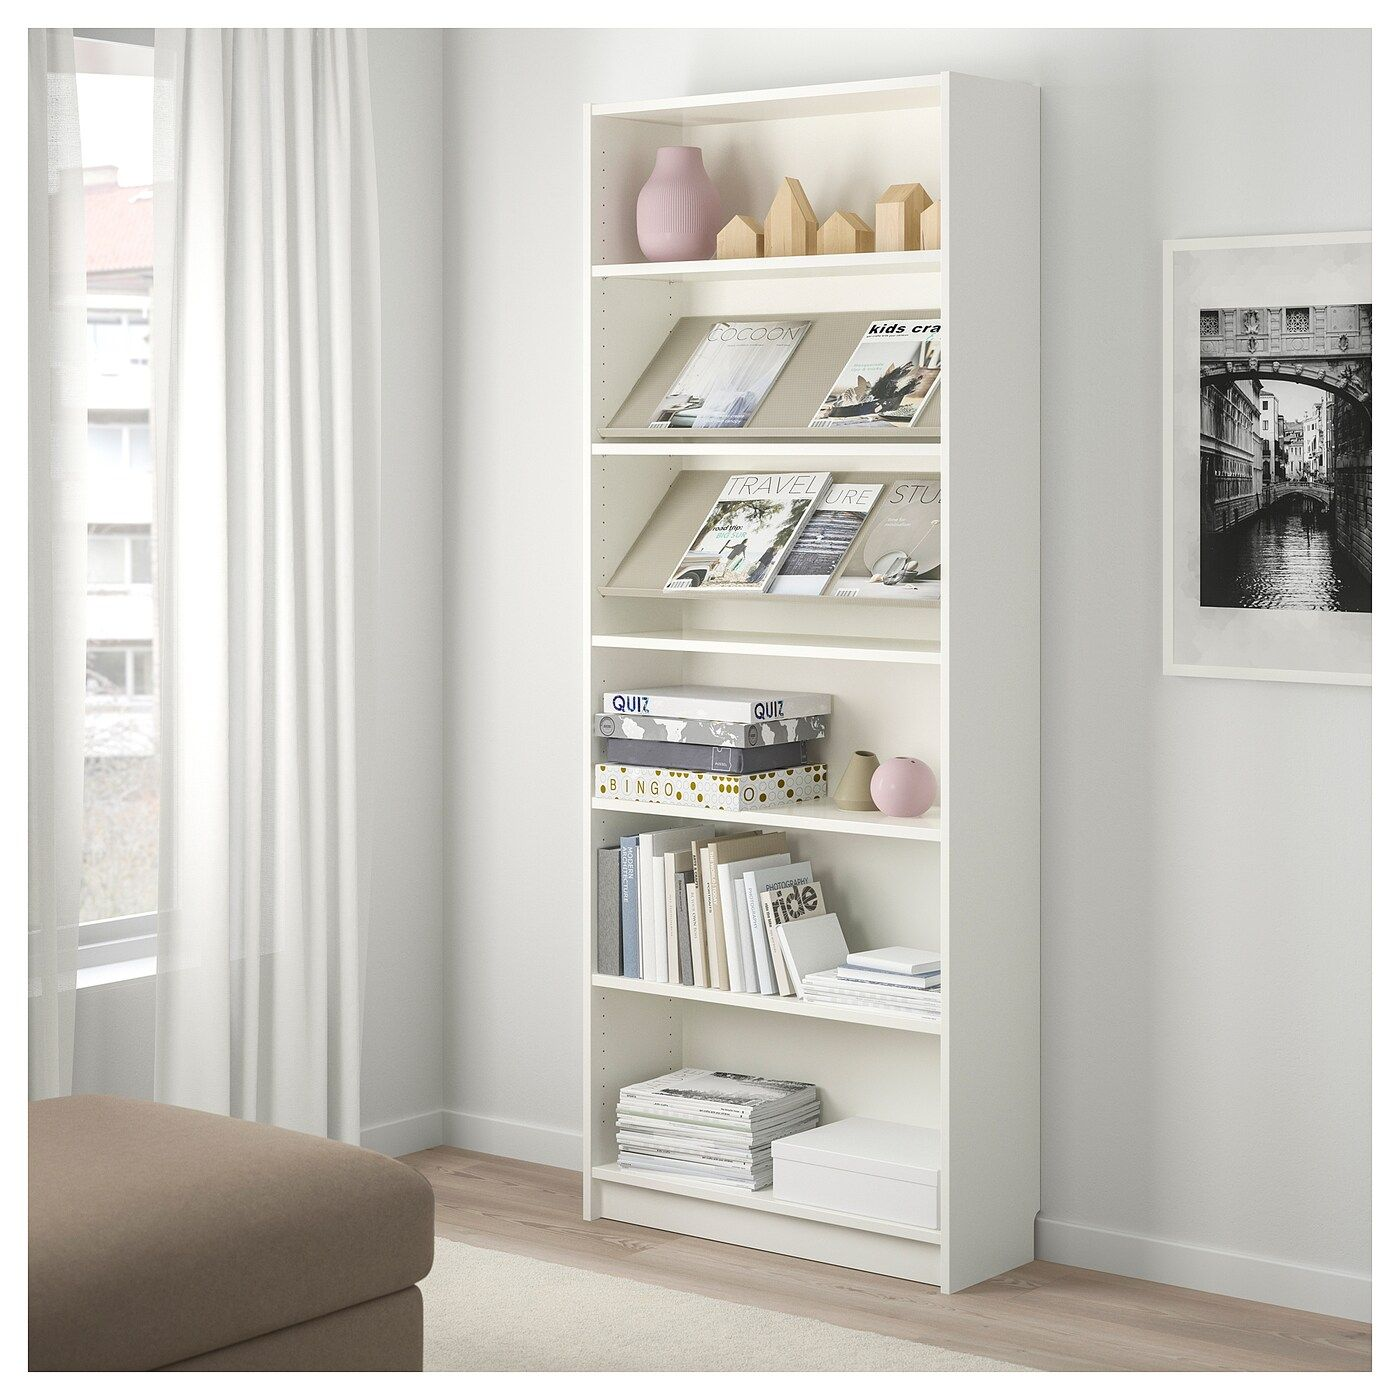 Billy Bottna Bookcase With Display Shelf White Beige 31 1 2x11x79 1 2 Ikea Display Shelves Shelves Bookcase